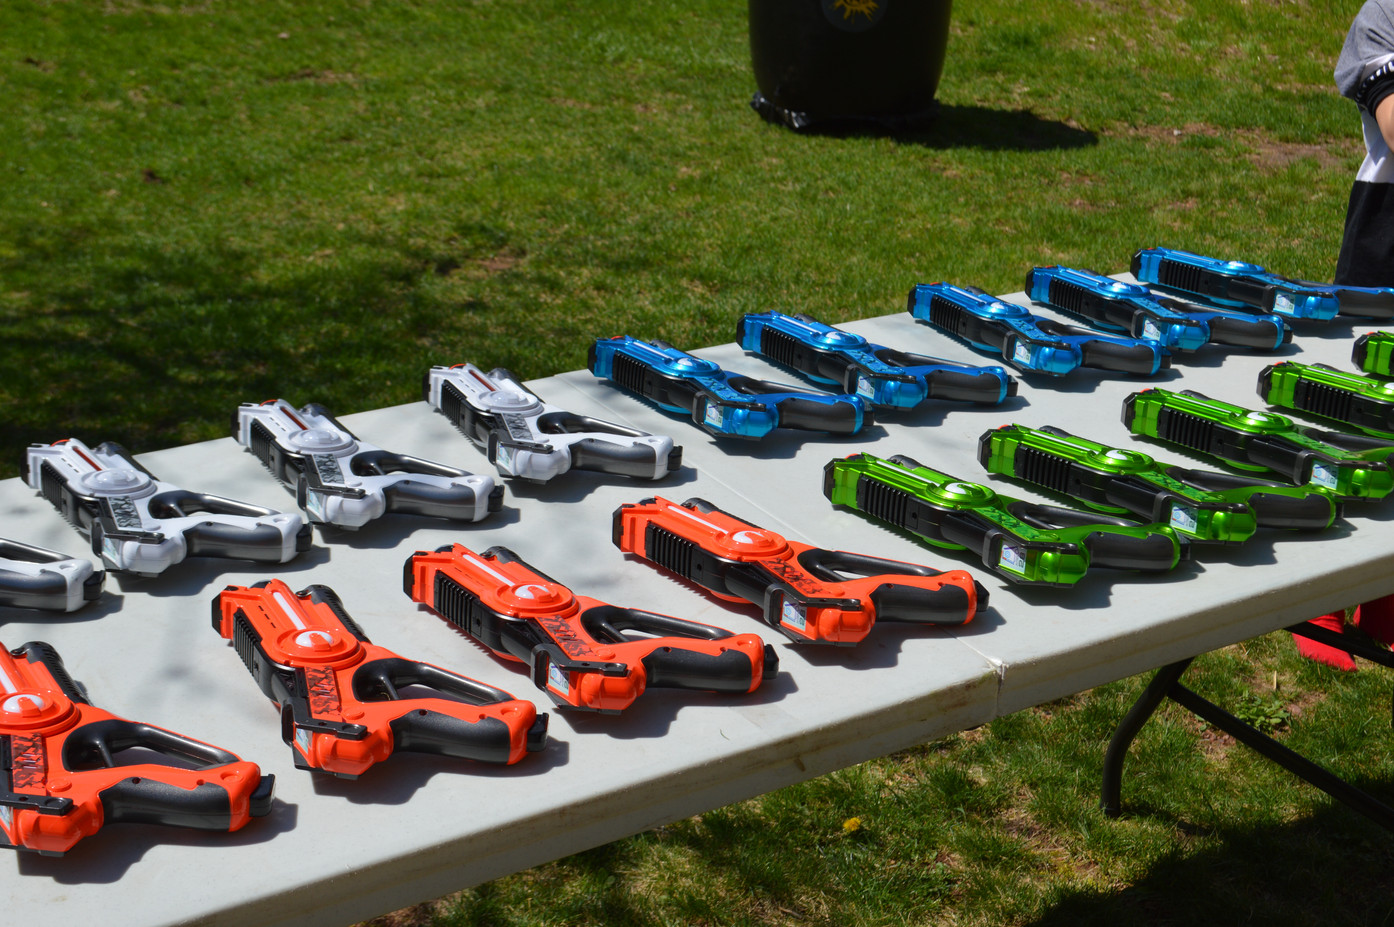 Sets-Of-Laser-Tag-Guns-On-The-Table.JPG